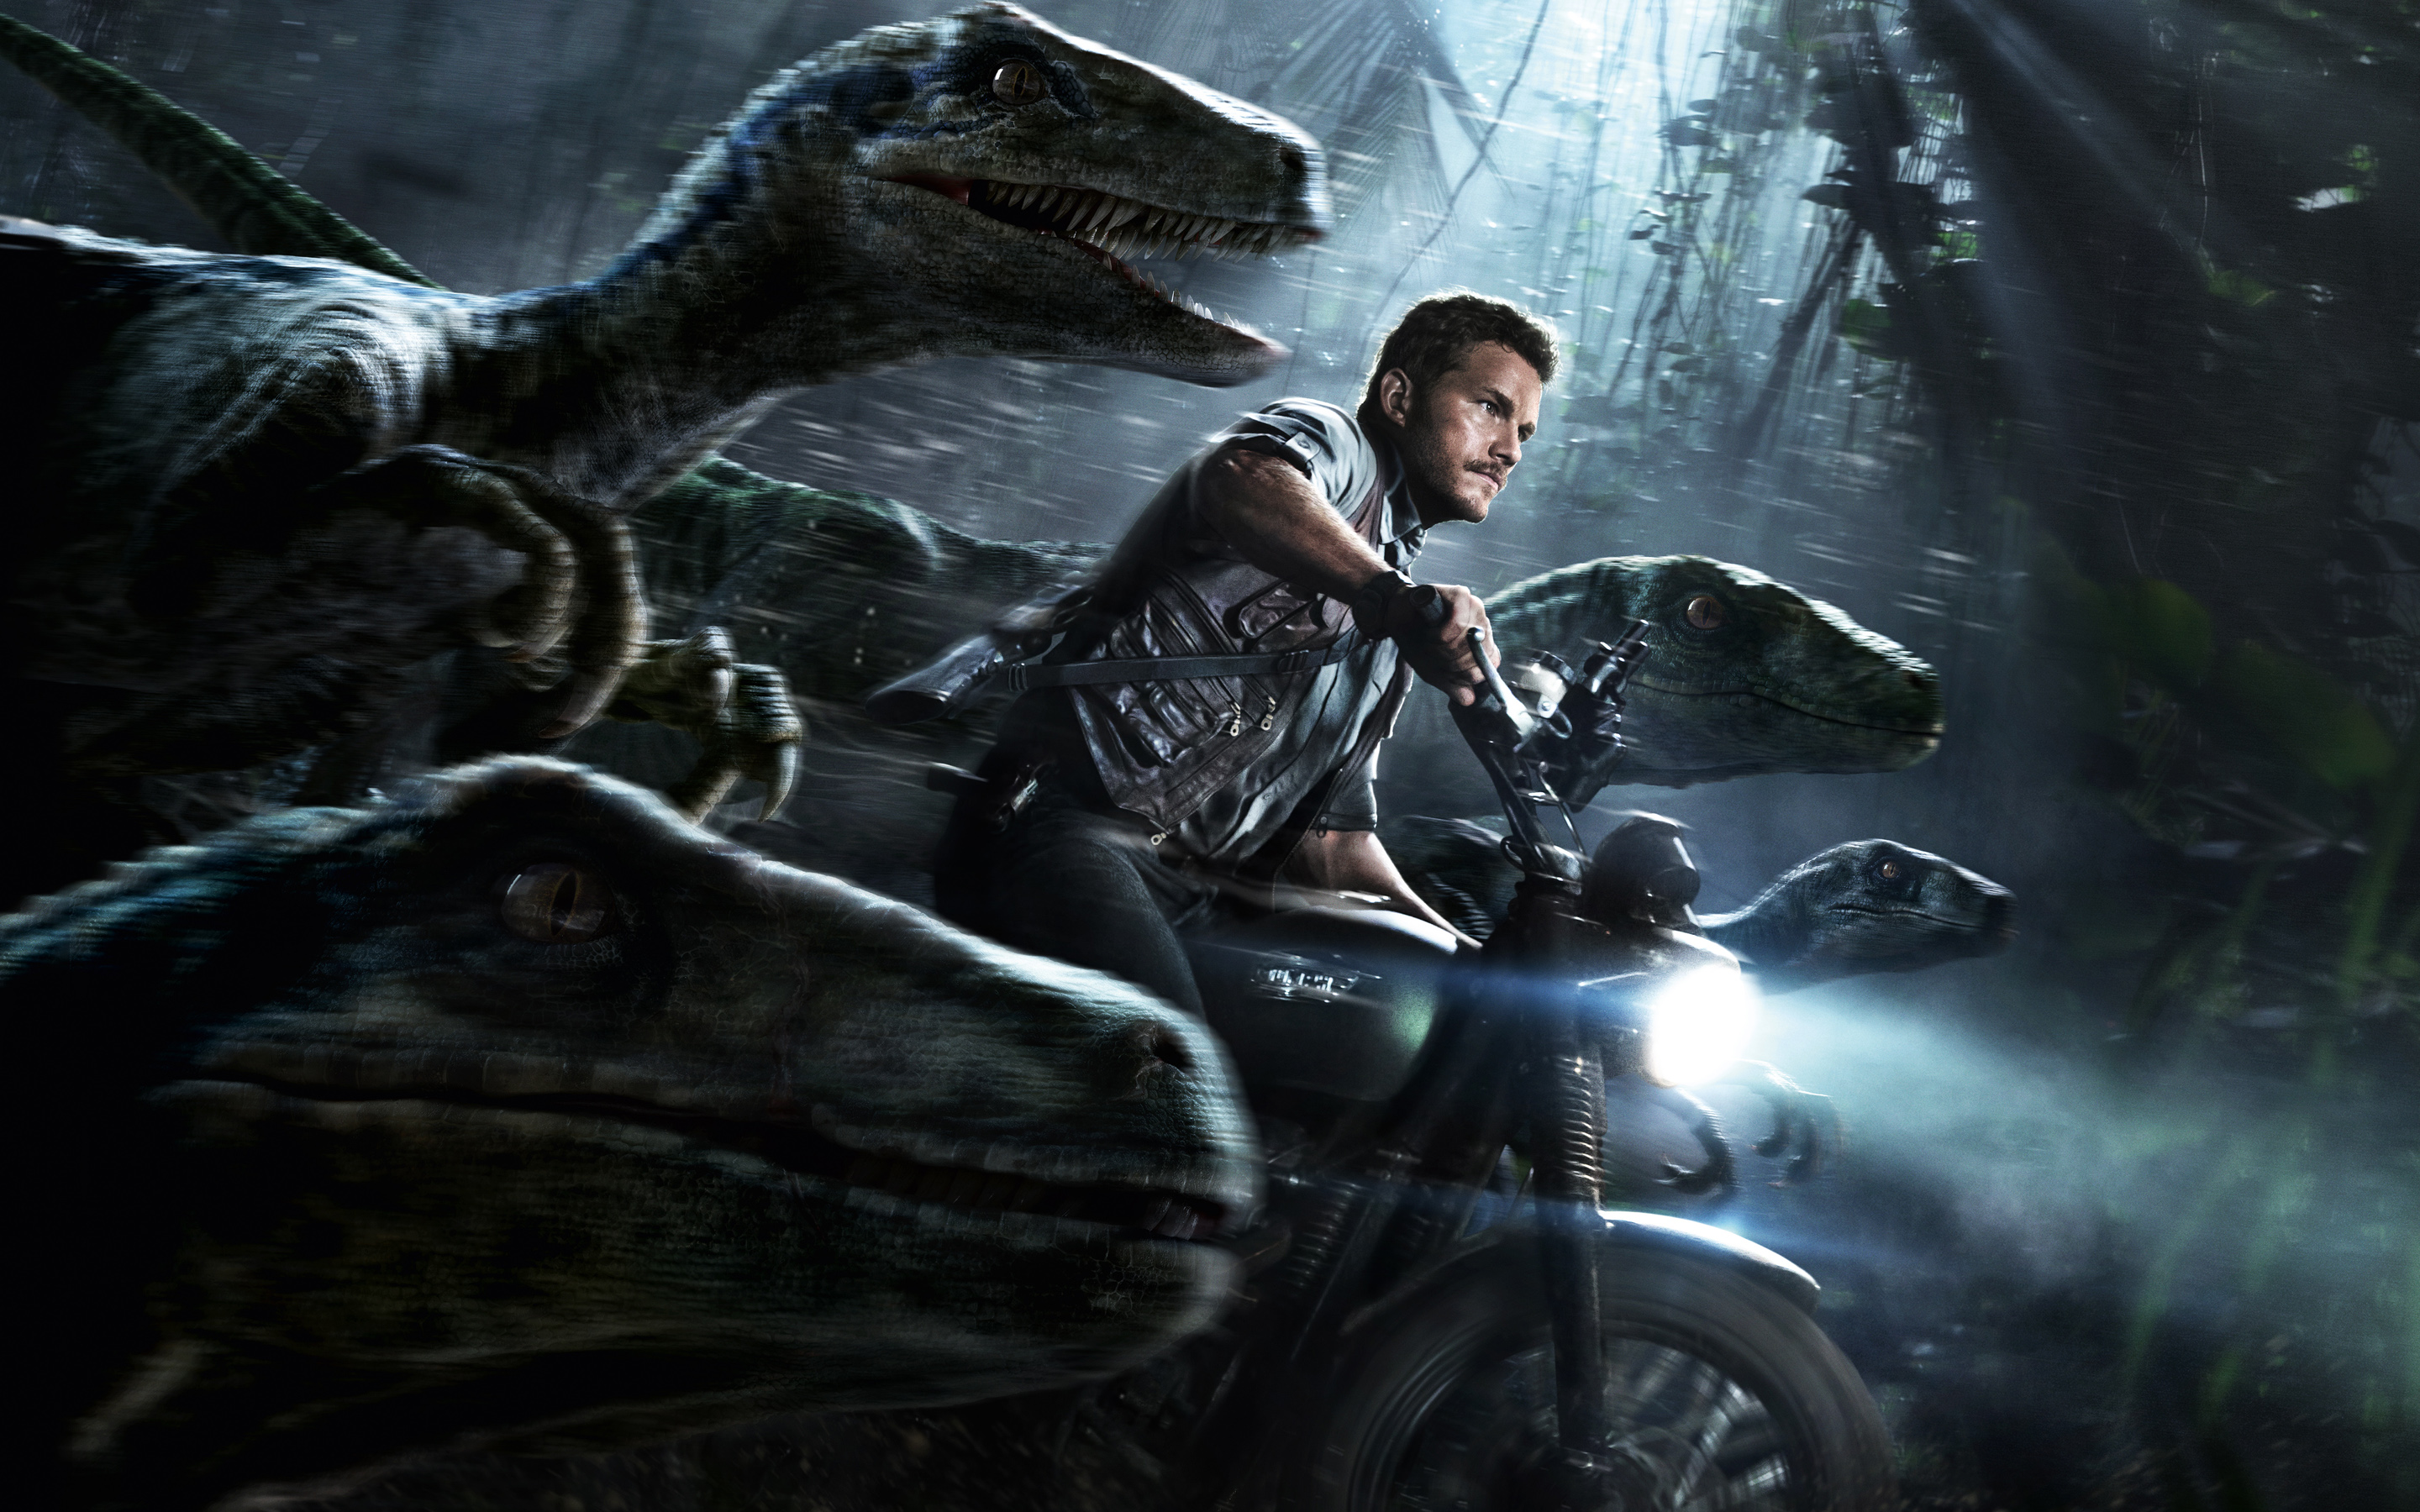 jurassic world chris pratt raptor bikes Gareth Edwards, Rogue One, and the Case Against Hollywoods Billion Dollar Youth Movement